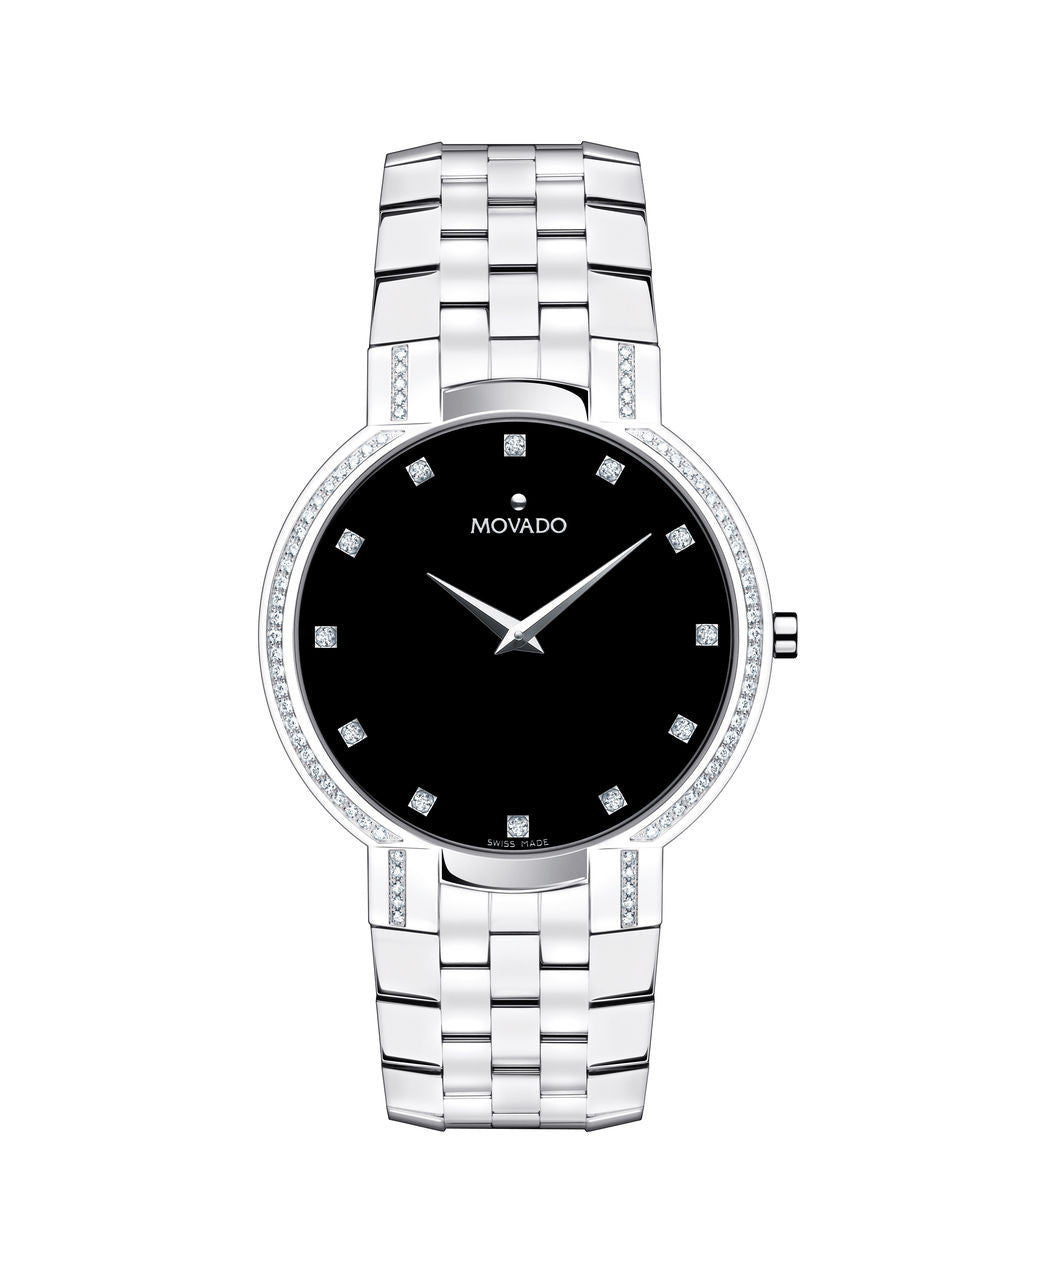 Movado Men's Faceto Watch, 38 mm Stainless Steel with 74 Diamonds 0606237 - Arnik Jewellers